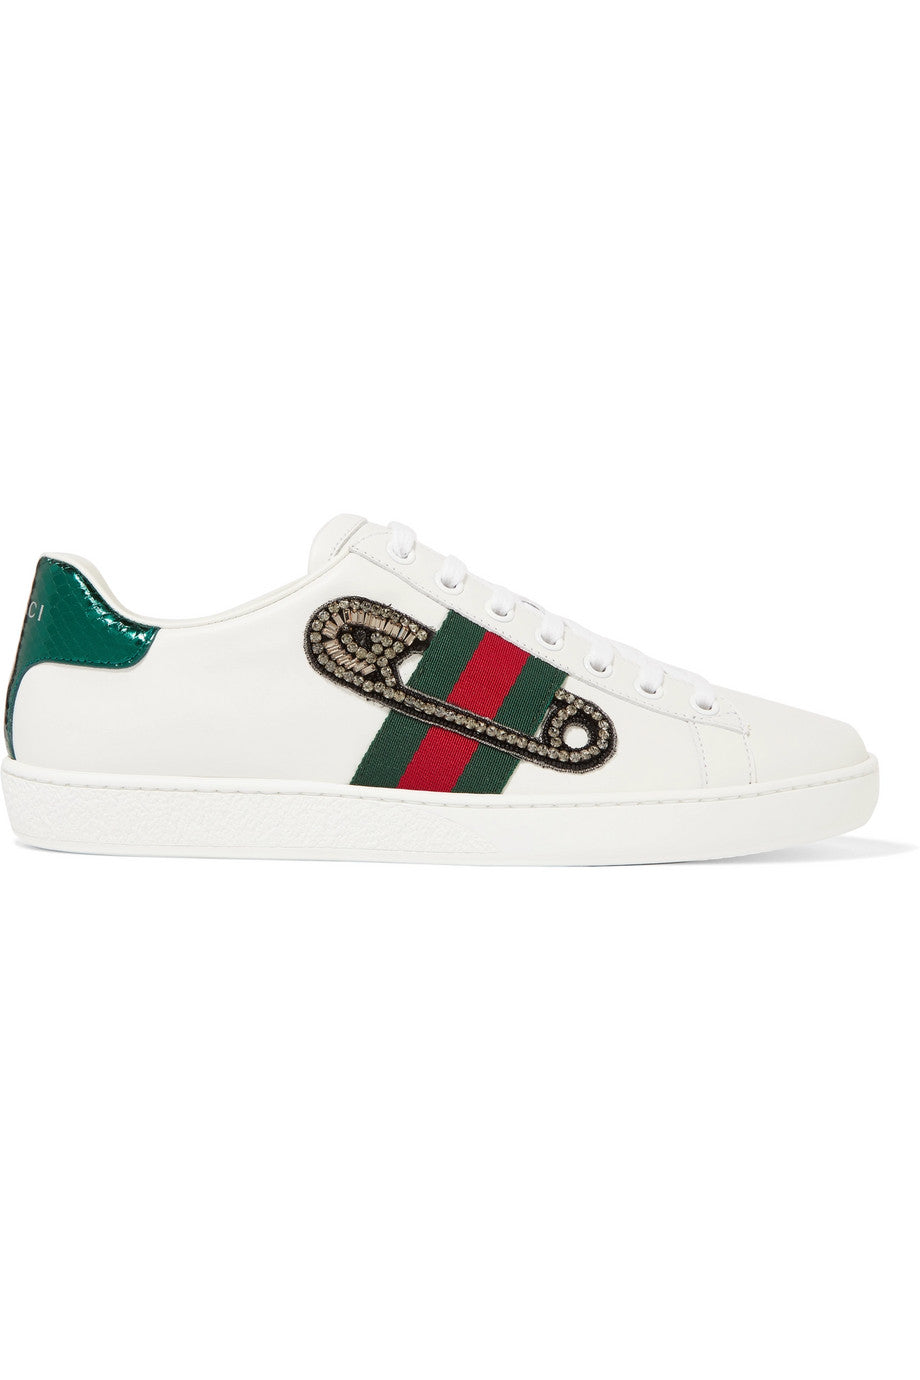 GUCCI-Ace Watersnake-trimmed embellished leather sneakers